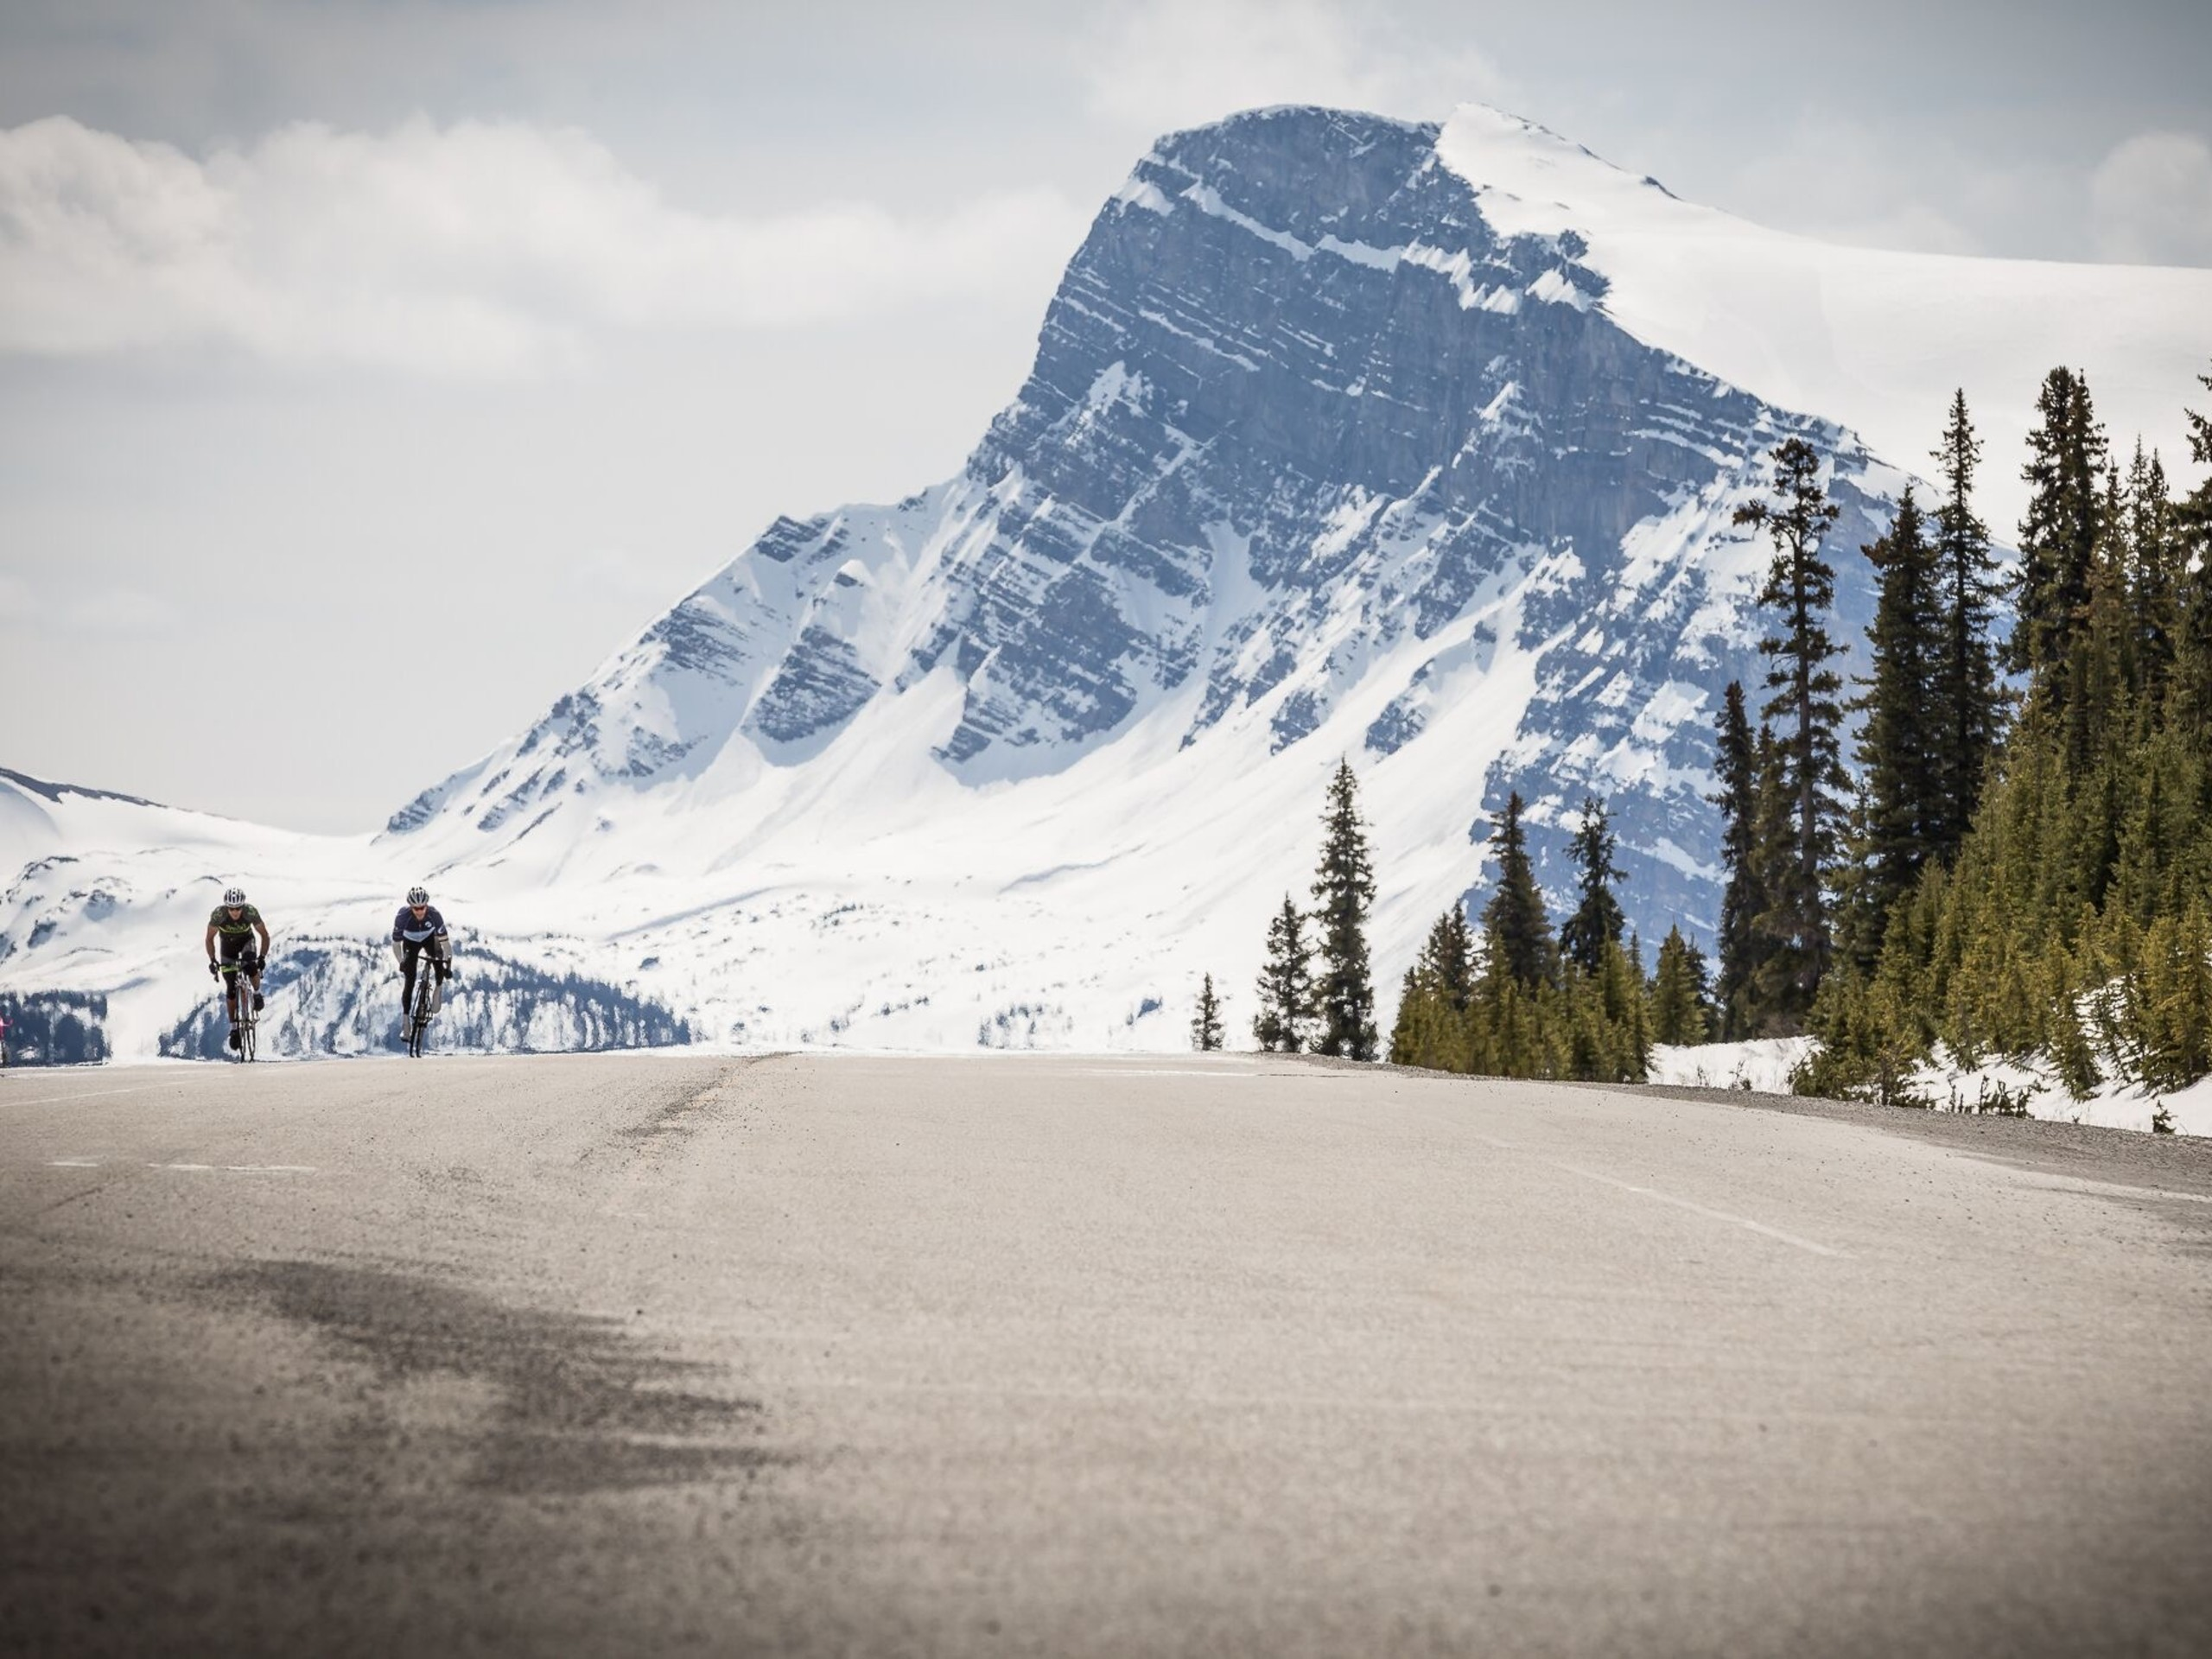 Snowy peaks along the Icefields Parkway